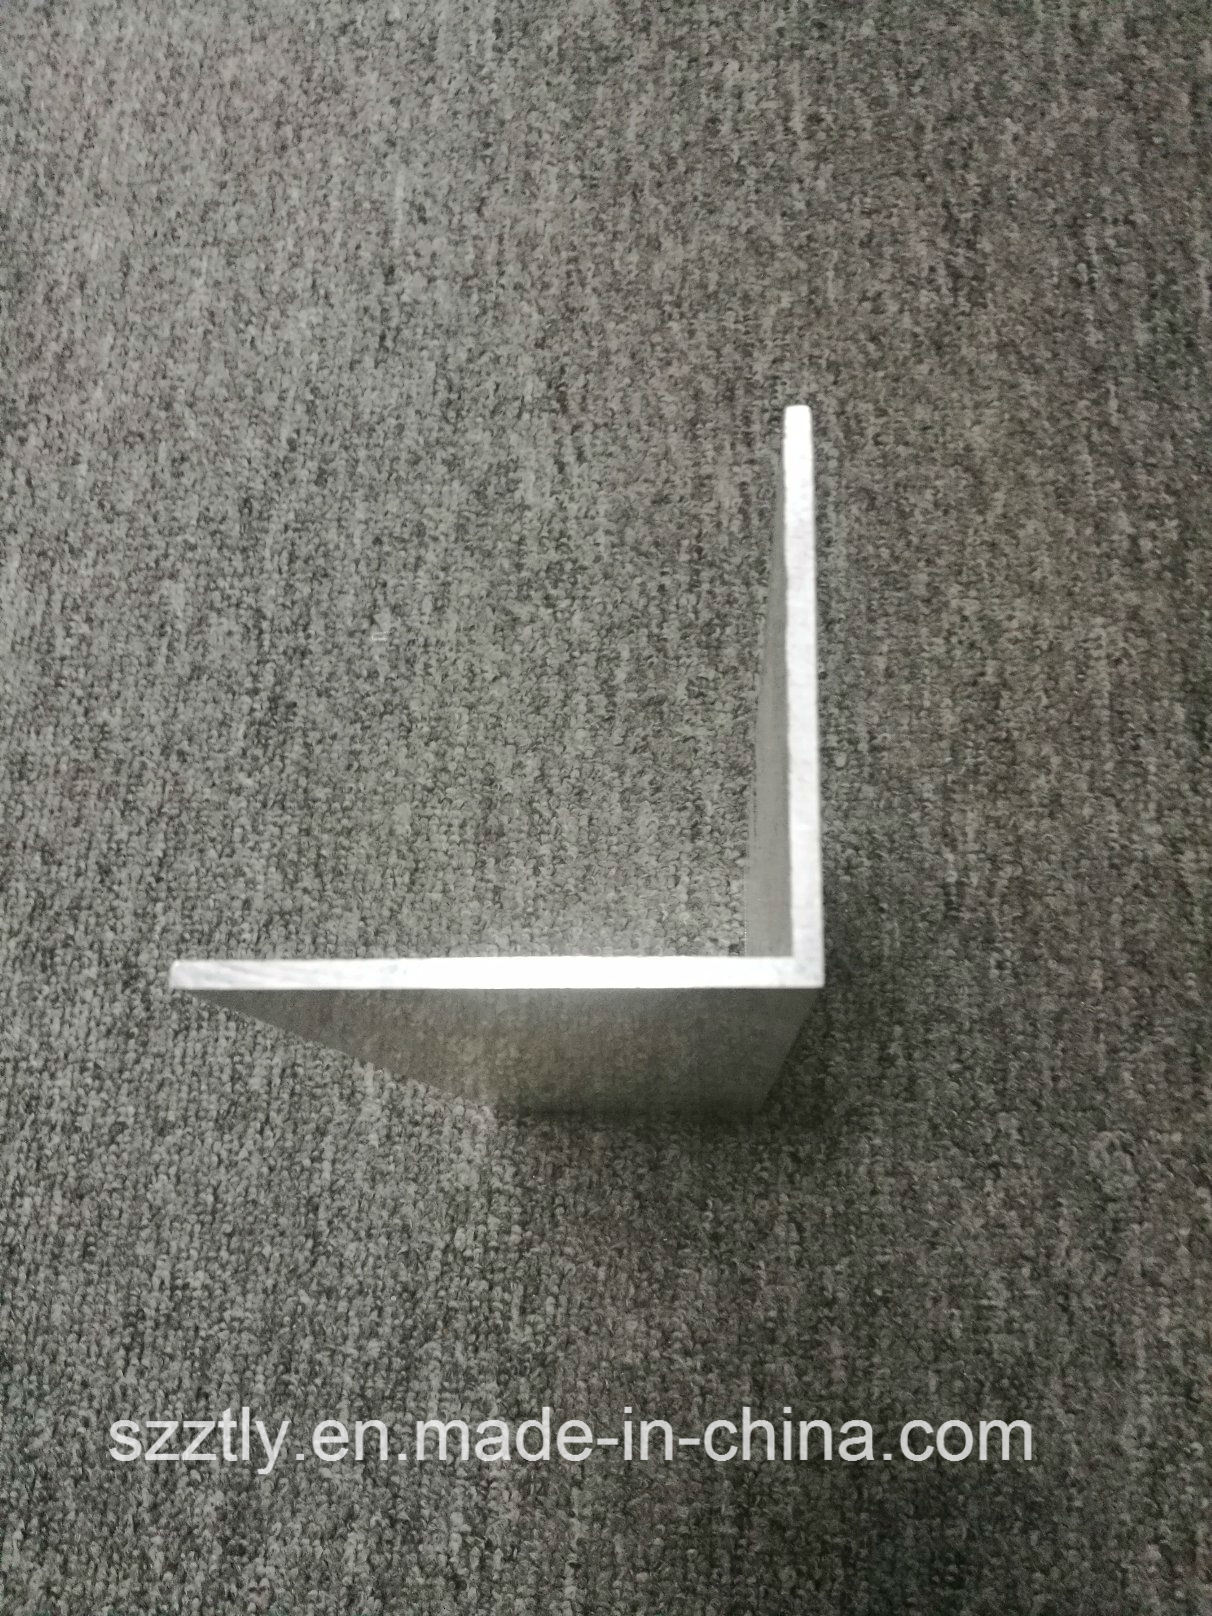 10X10 to 90X90mm Available Aluminum Extrusion L Shaped Angle Profiles